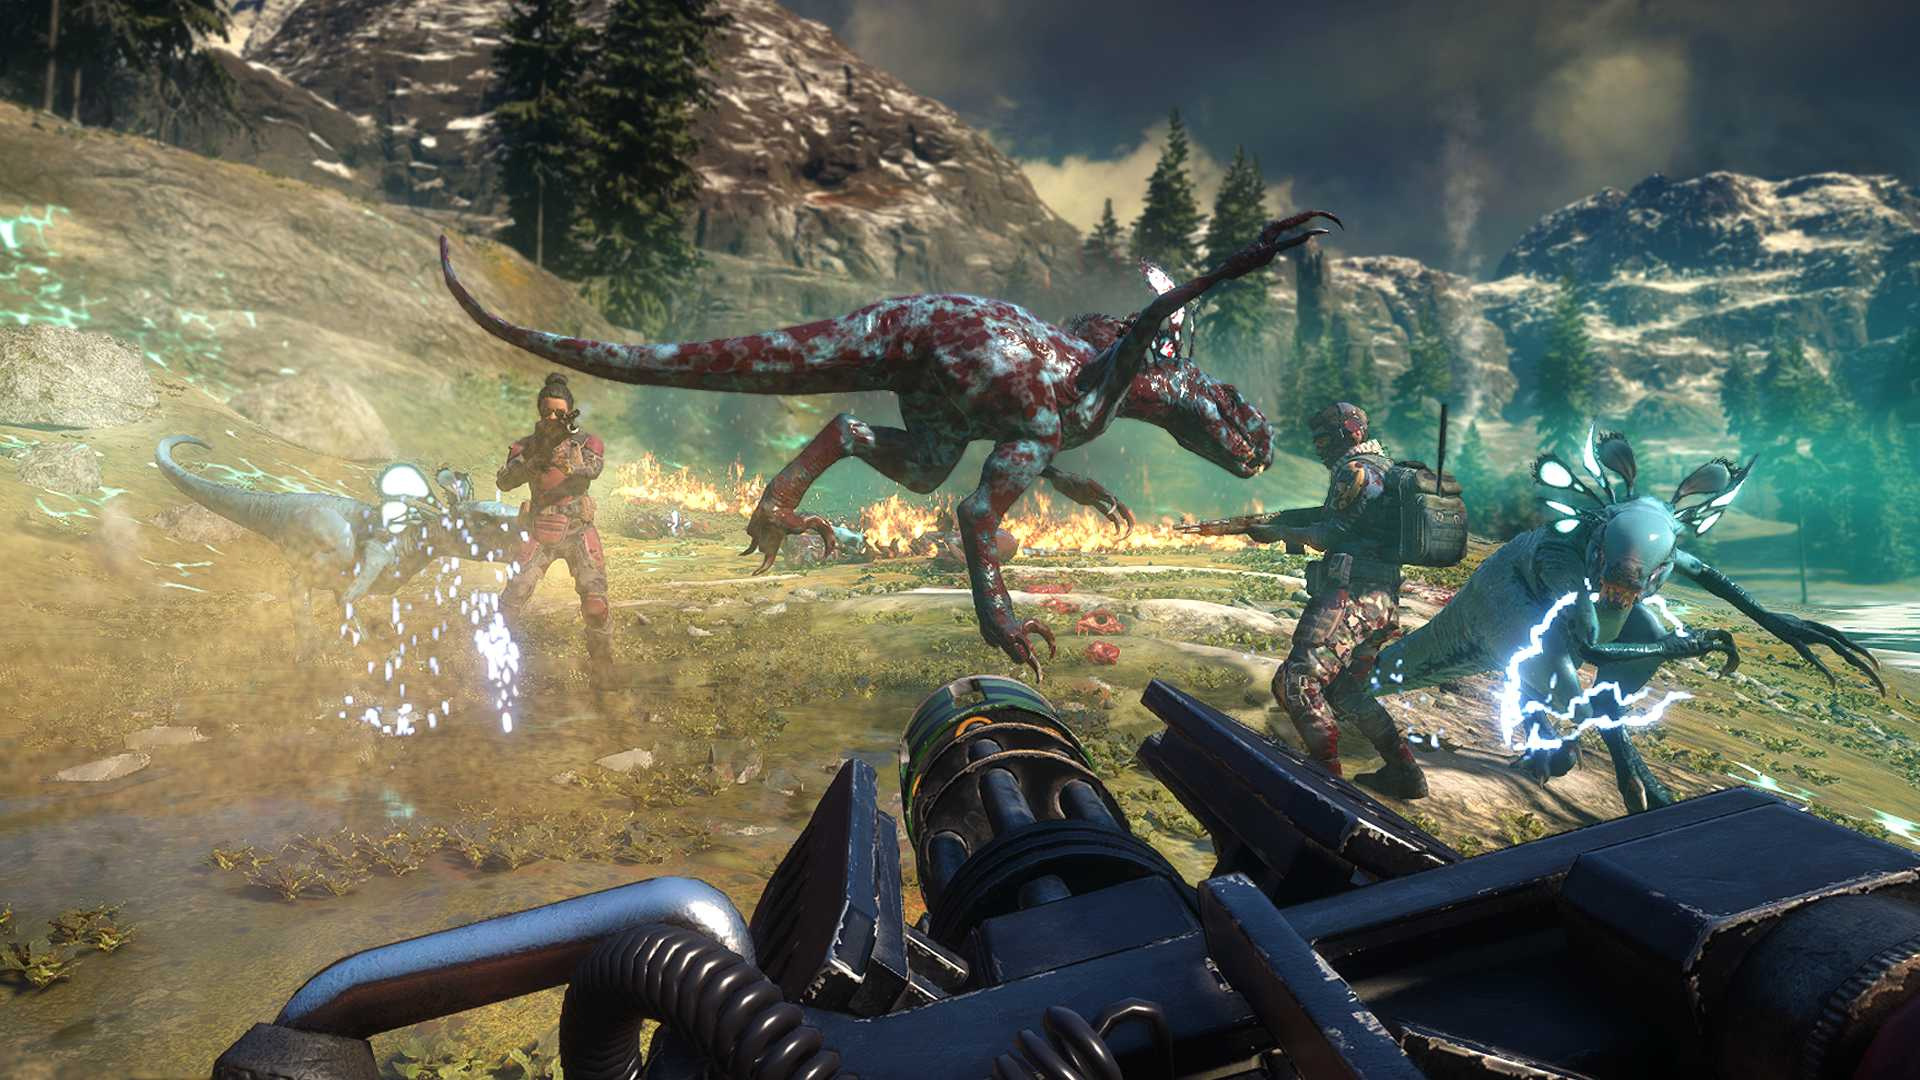 You'll need a buddy to get into the Second Extinction beta screenshot